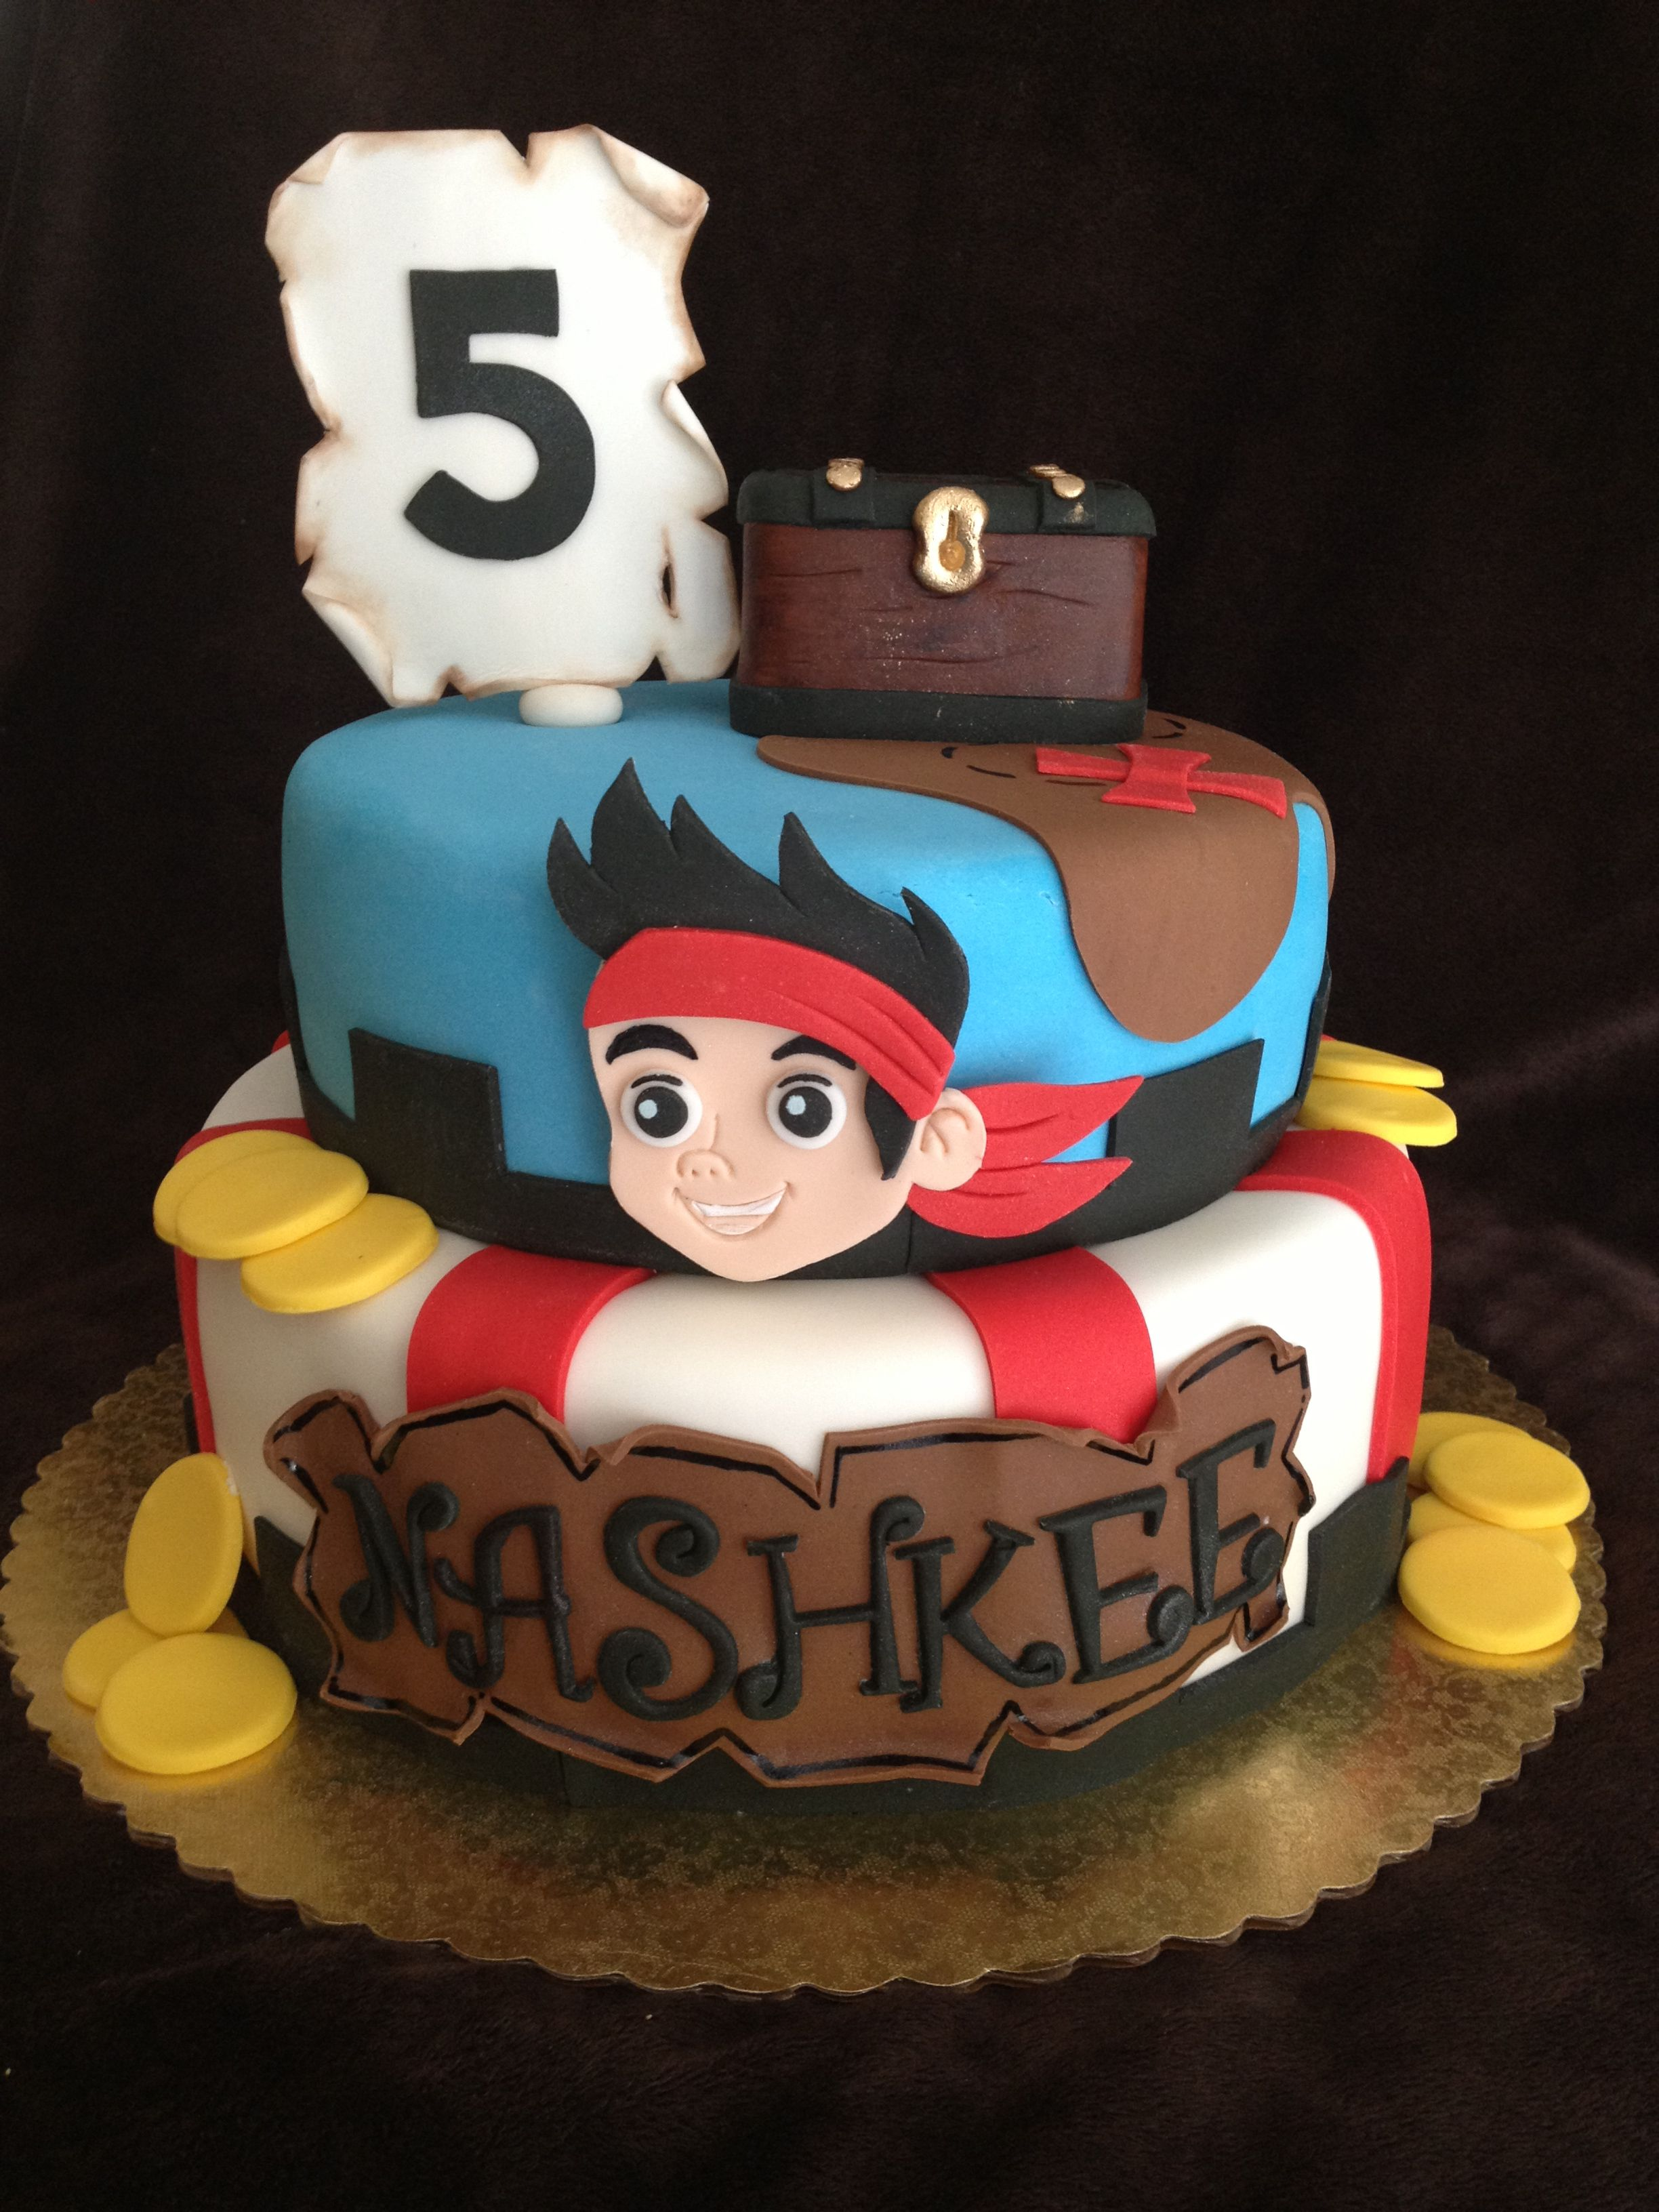 Remarkable Jake And The Neverland Pirates Cake Pirate Cake Pirate Birthday Birthday Cards Printable Trancafe Filternl